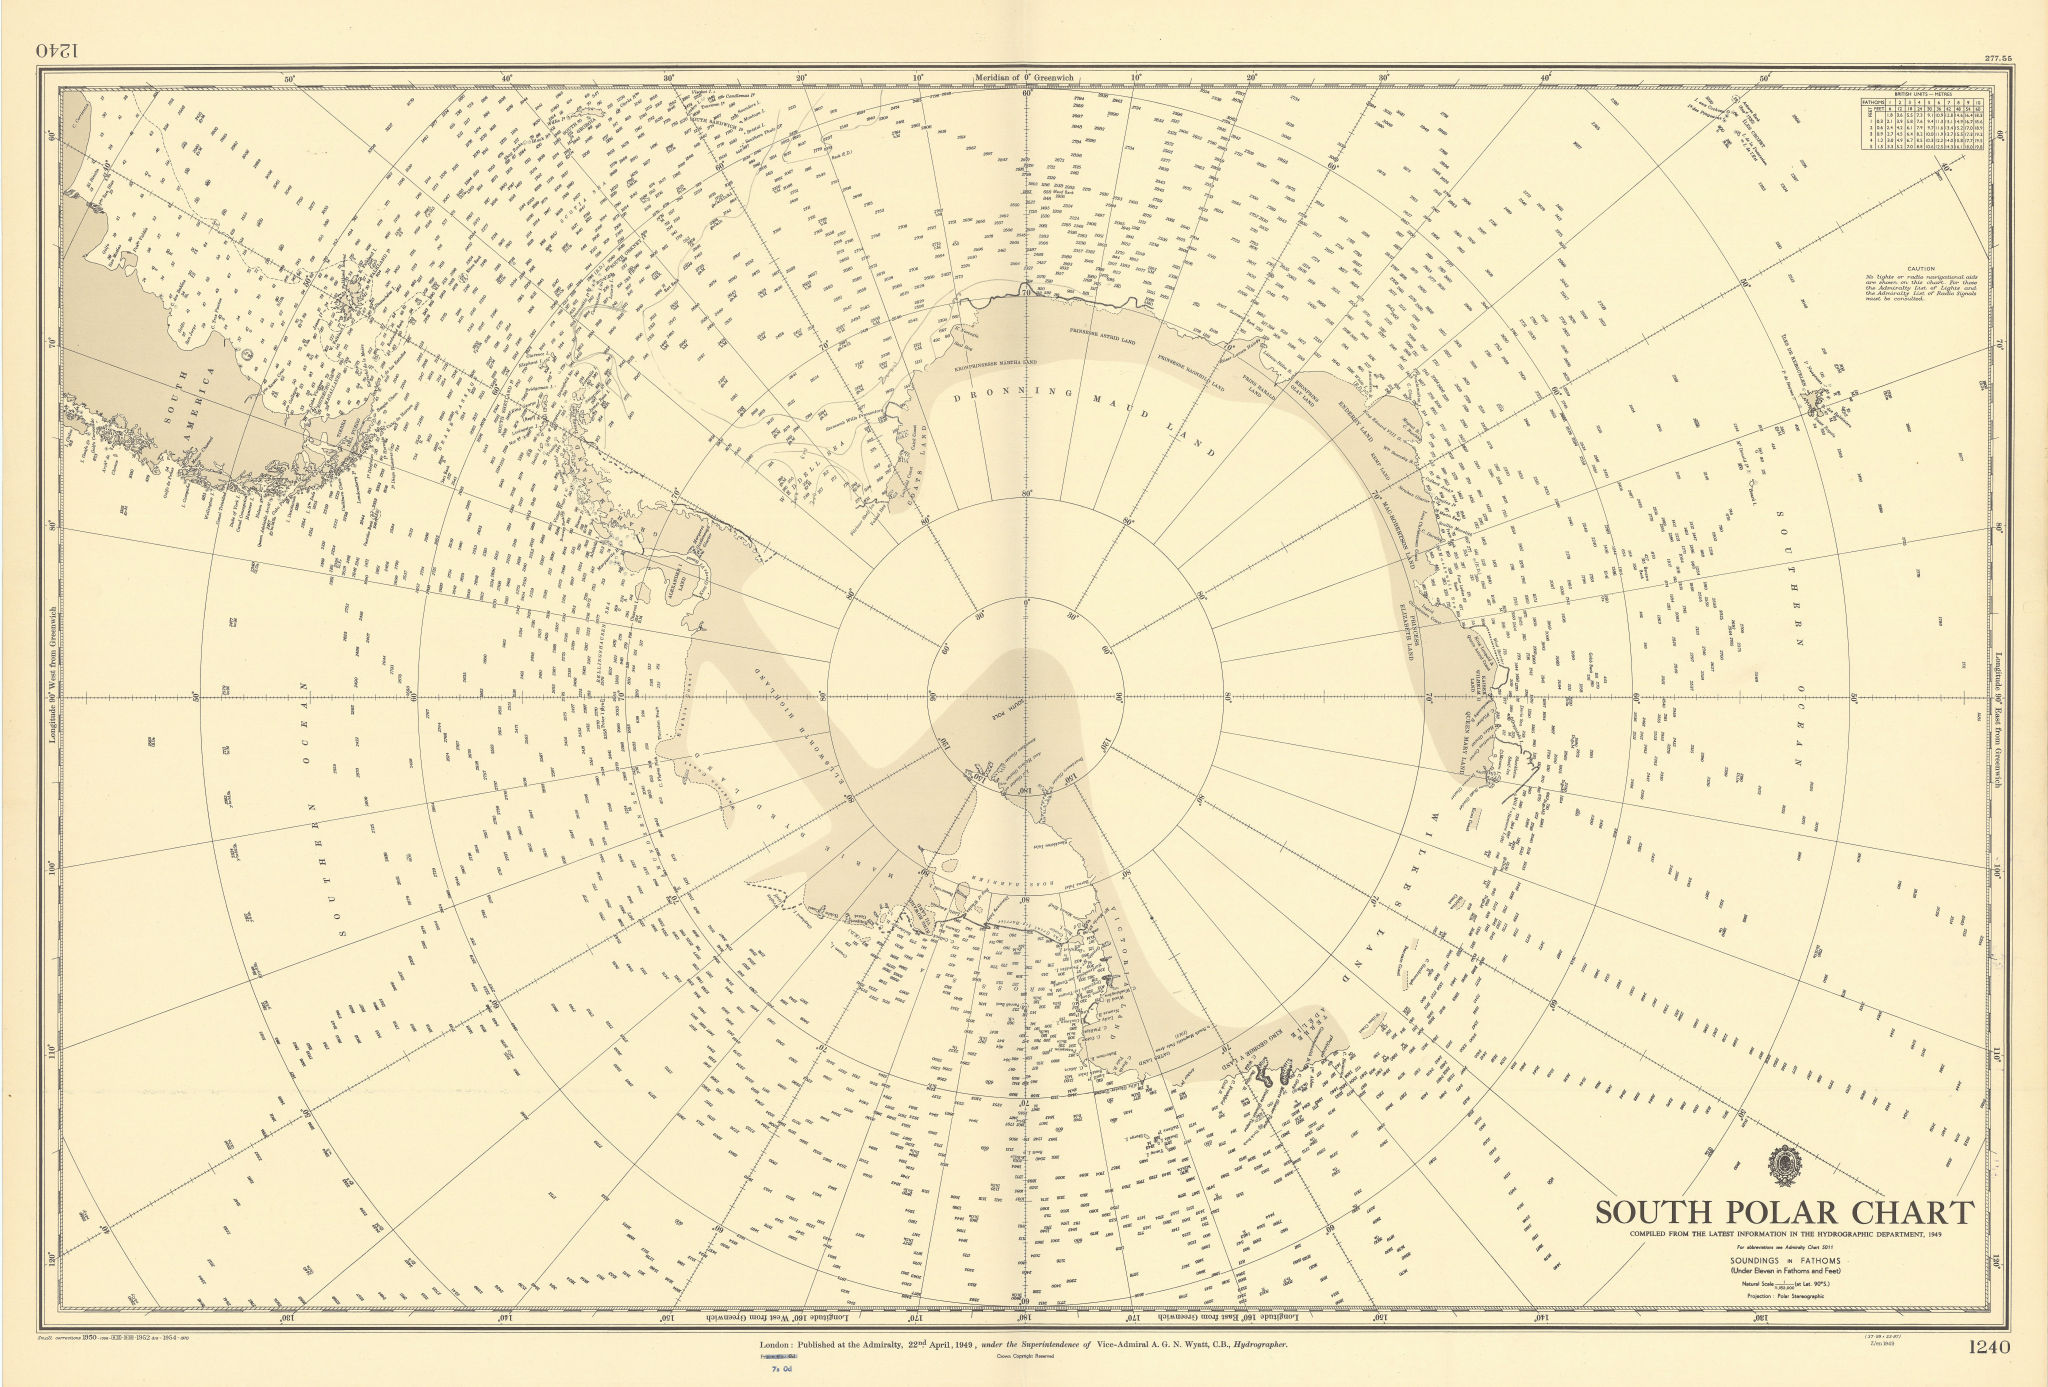 South Polar Chart. Antarctica. ADMIRALTY sea chart 1949 (1954) old vintage map